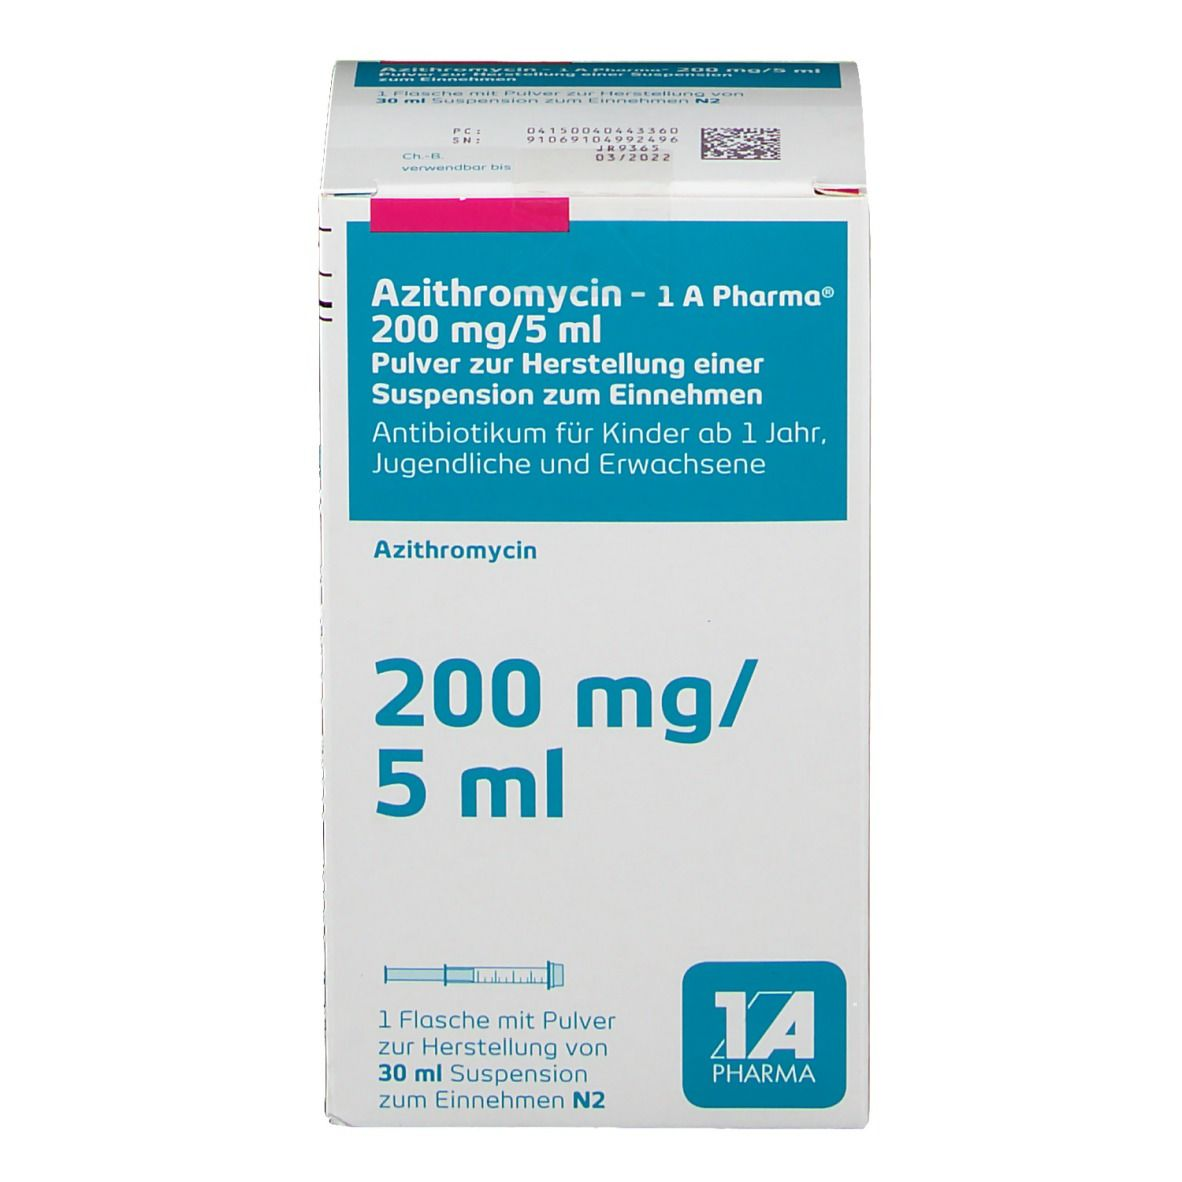 AZITHROMYCIN 1A Ph.200mg/5ml Plv.Hers.Sus.